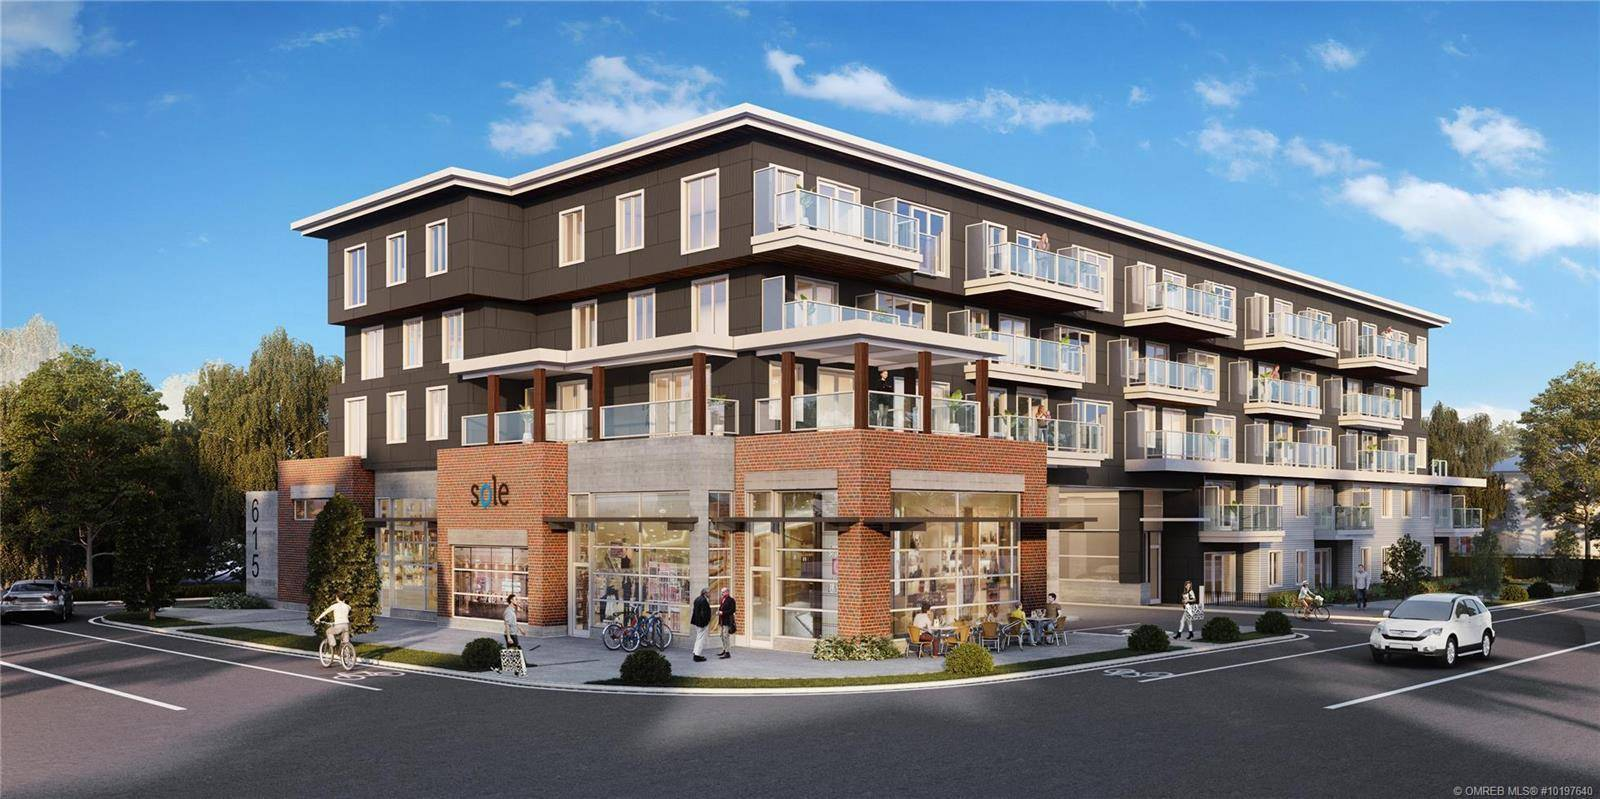 Residential property for sale at 615 Rutland Rd North Unit #Sl1 Kelowna British Columbia - MLS: 10197640